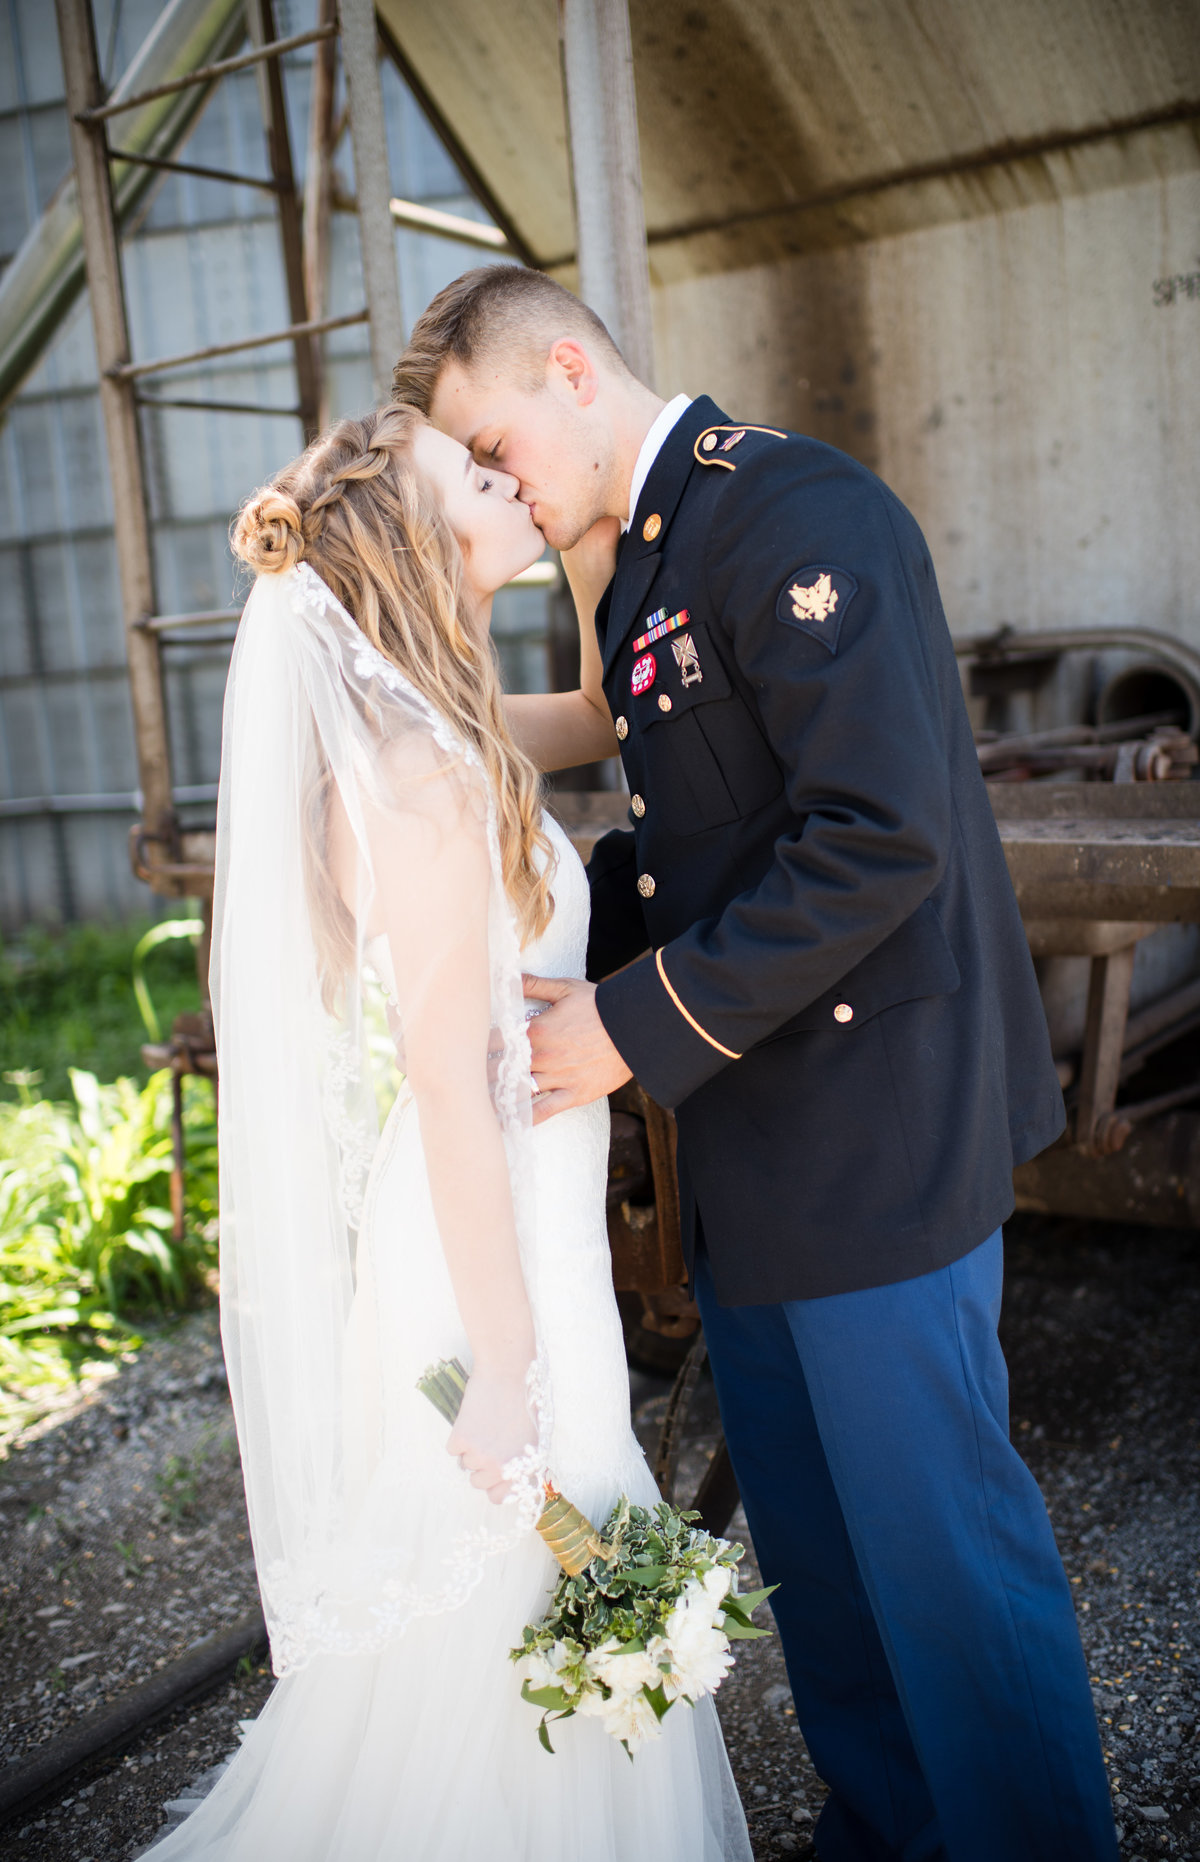 Tennessee Wedding Photographer - Mint Magnolia Photography8500